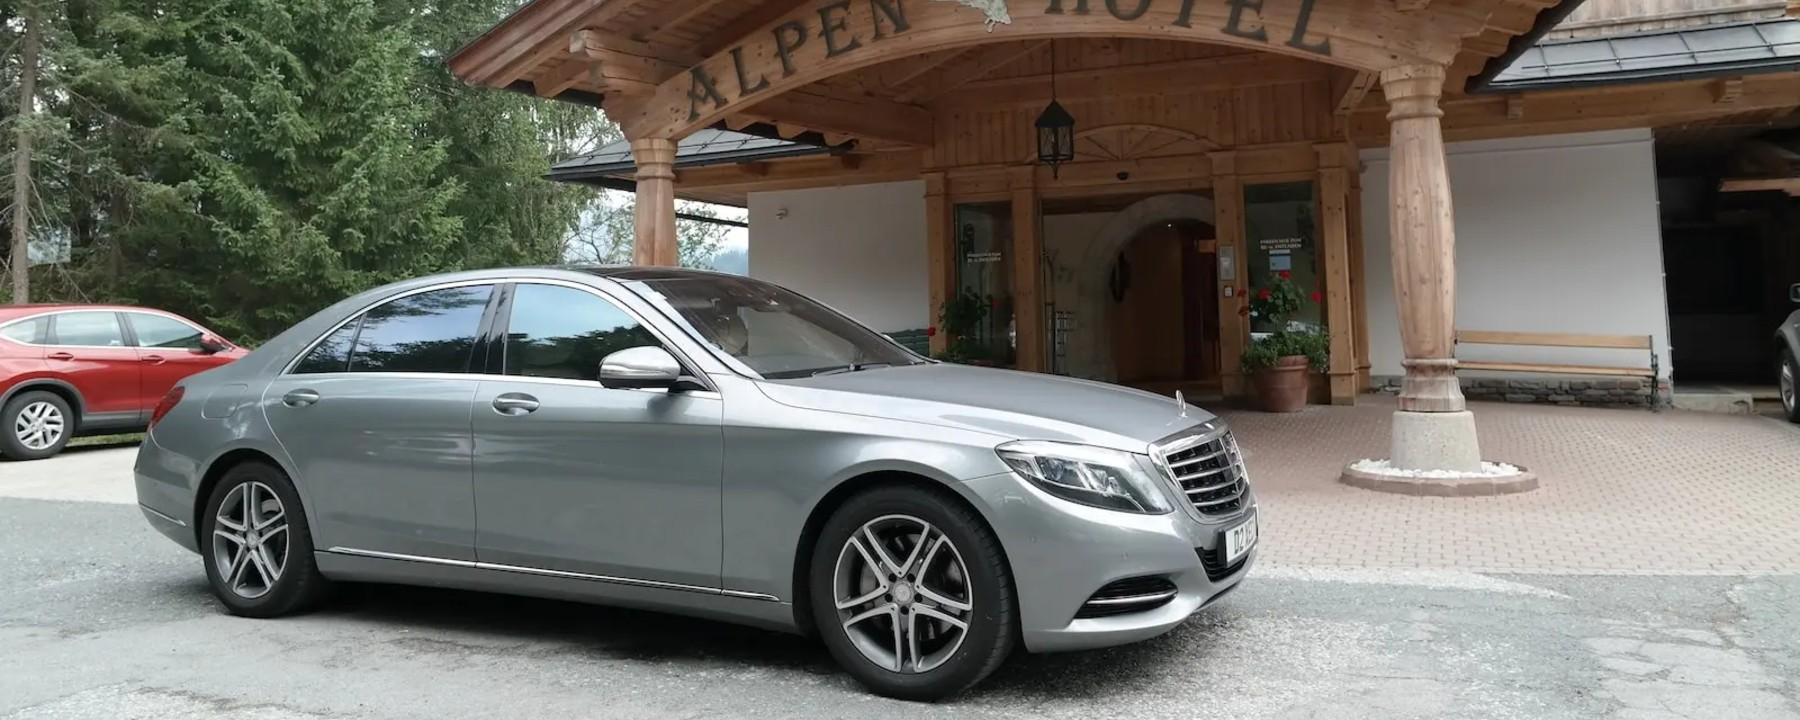 A Chauffeured journey from Austria